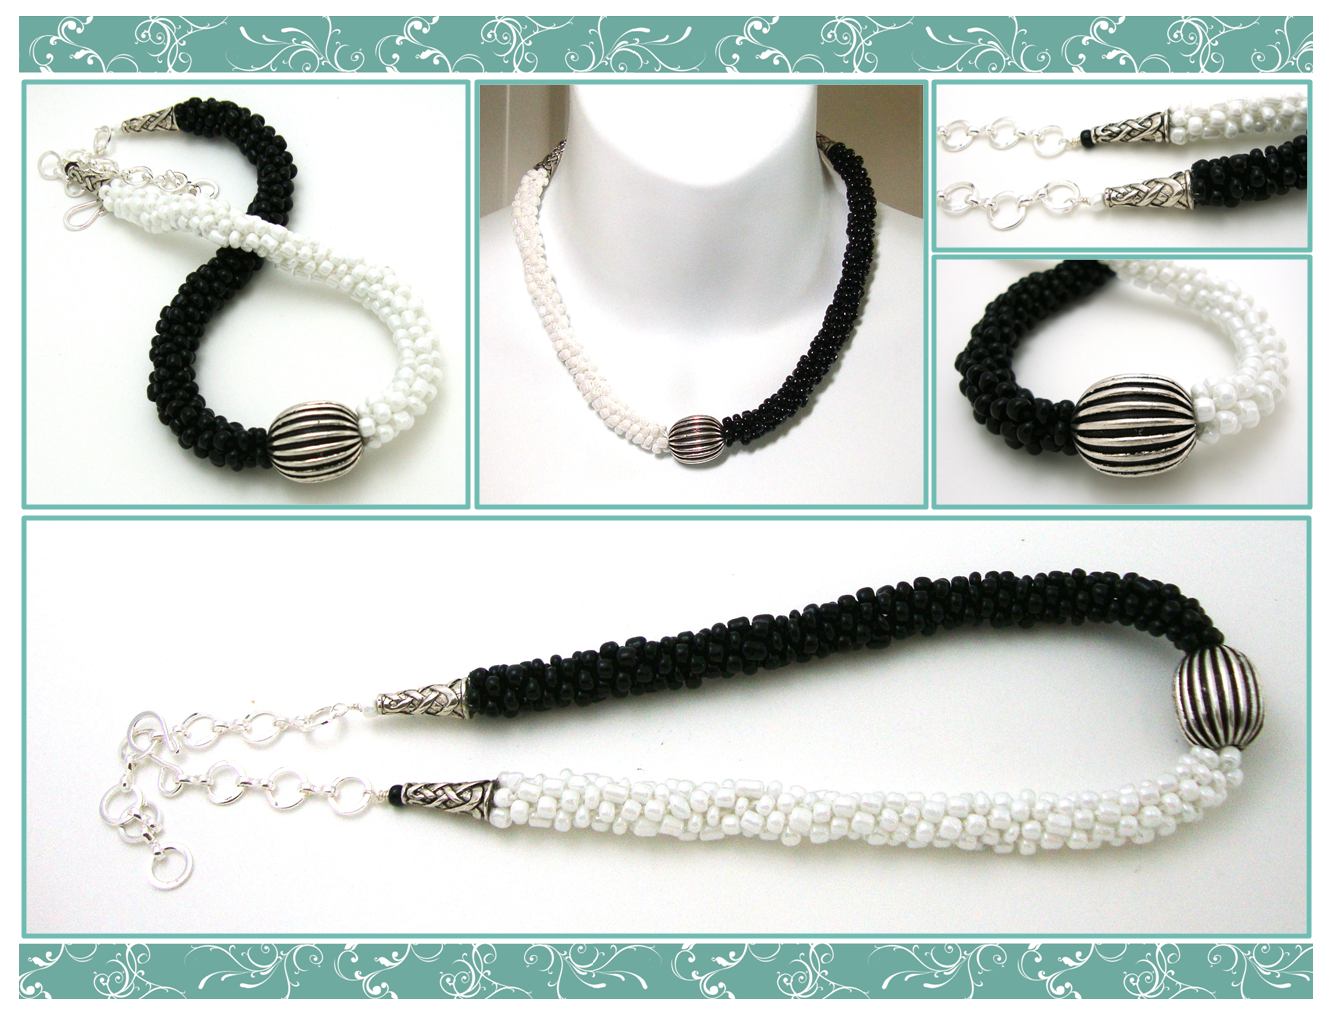 kumihimo patterns | Kumihimo Necklace - Beaded - Black and White ...